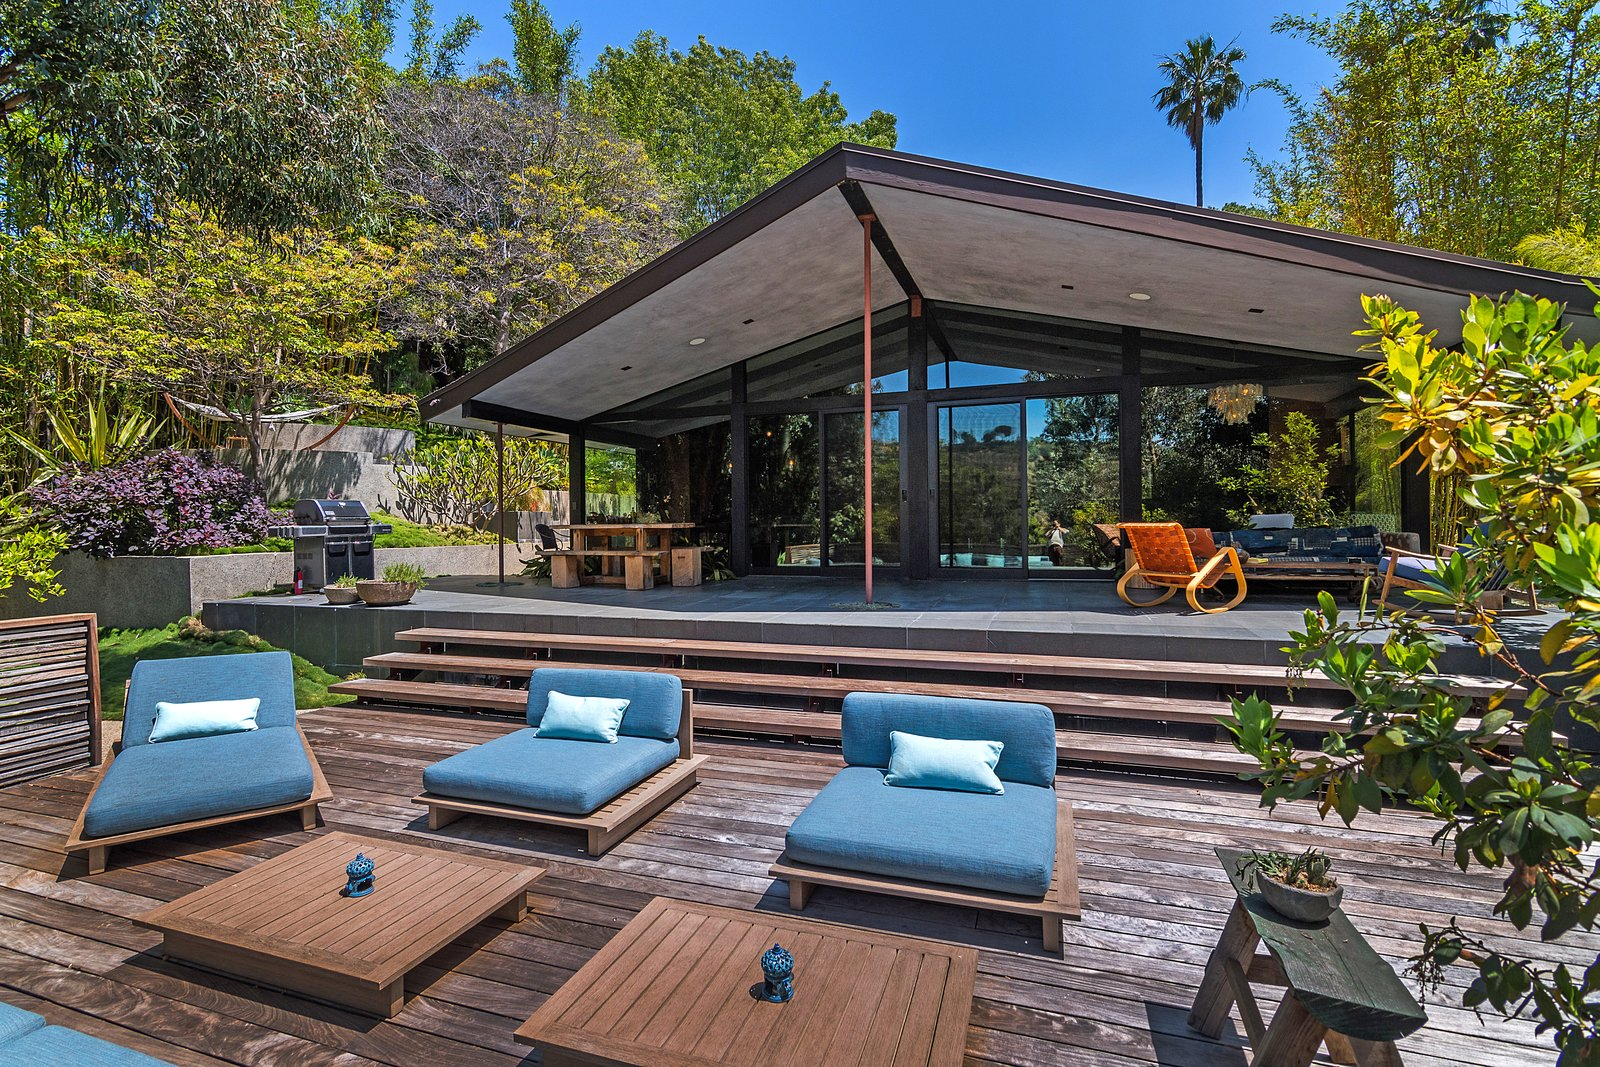 Tagged: Outdoor, Large Patio, Porch, Deck, Back Yard, Wood Patio, Porch, Deck, and Trees. John Legend and Chrissy Teigen's Former Midcentury Home in the Hollywood Hills Is For Sale - Photo 13 of 14